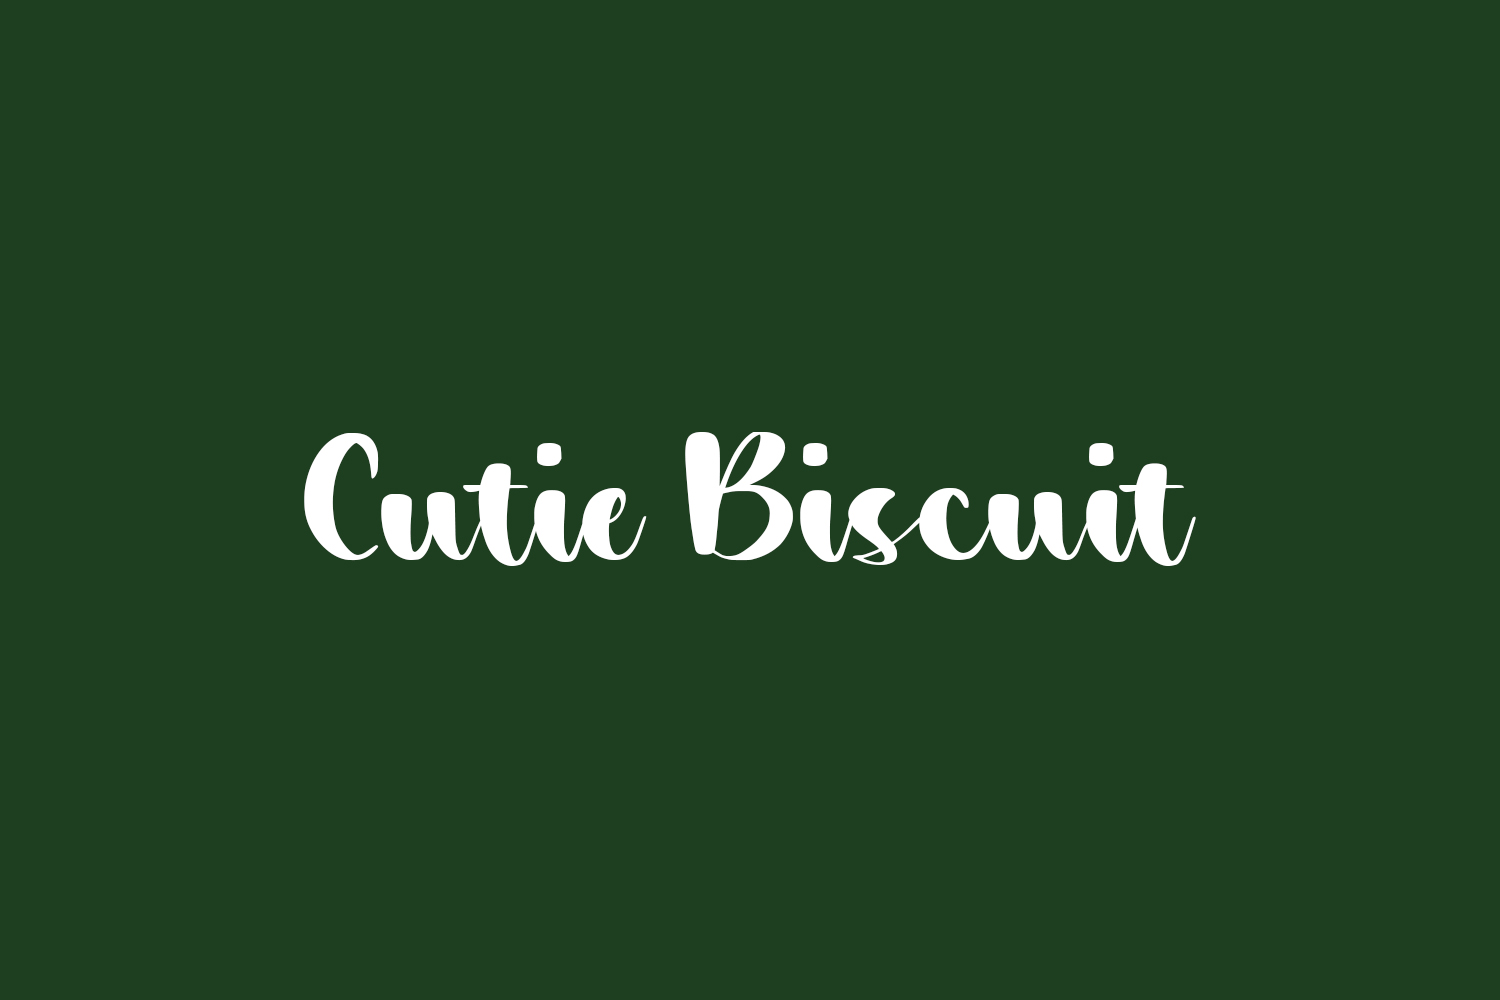 Cutie Biscuit Free Font